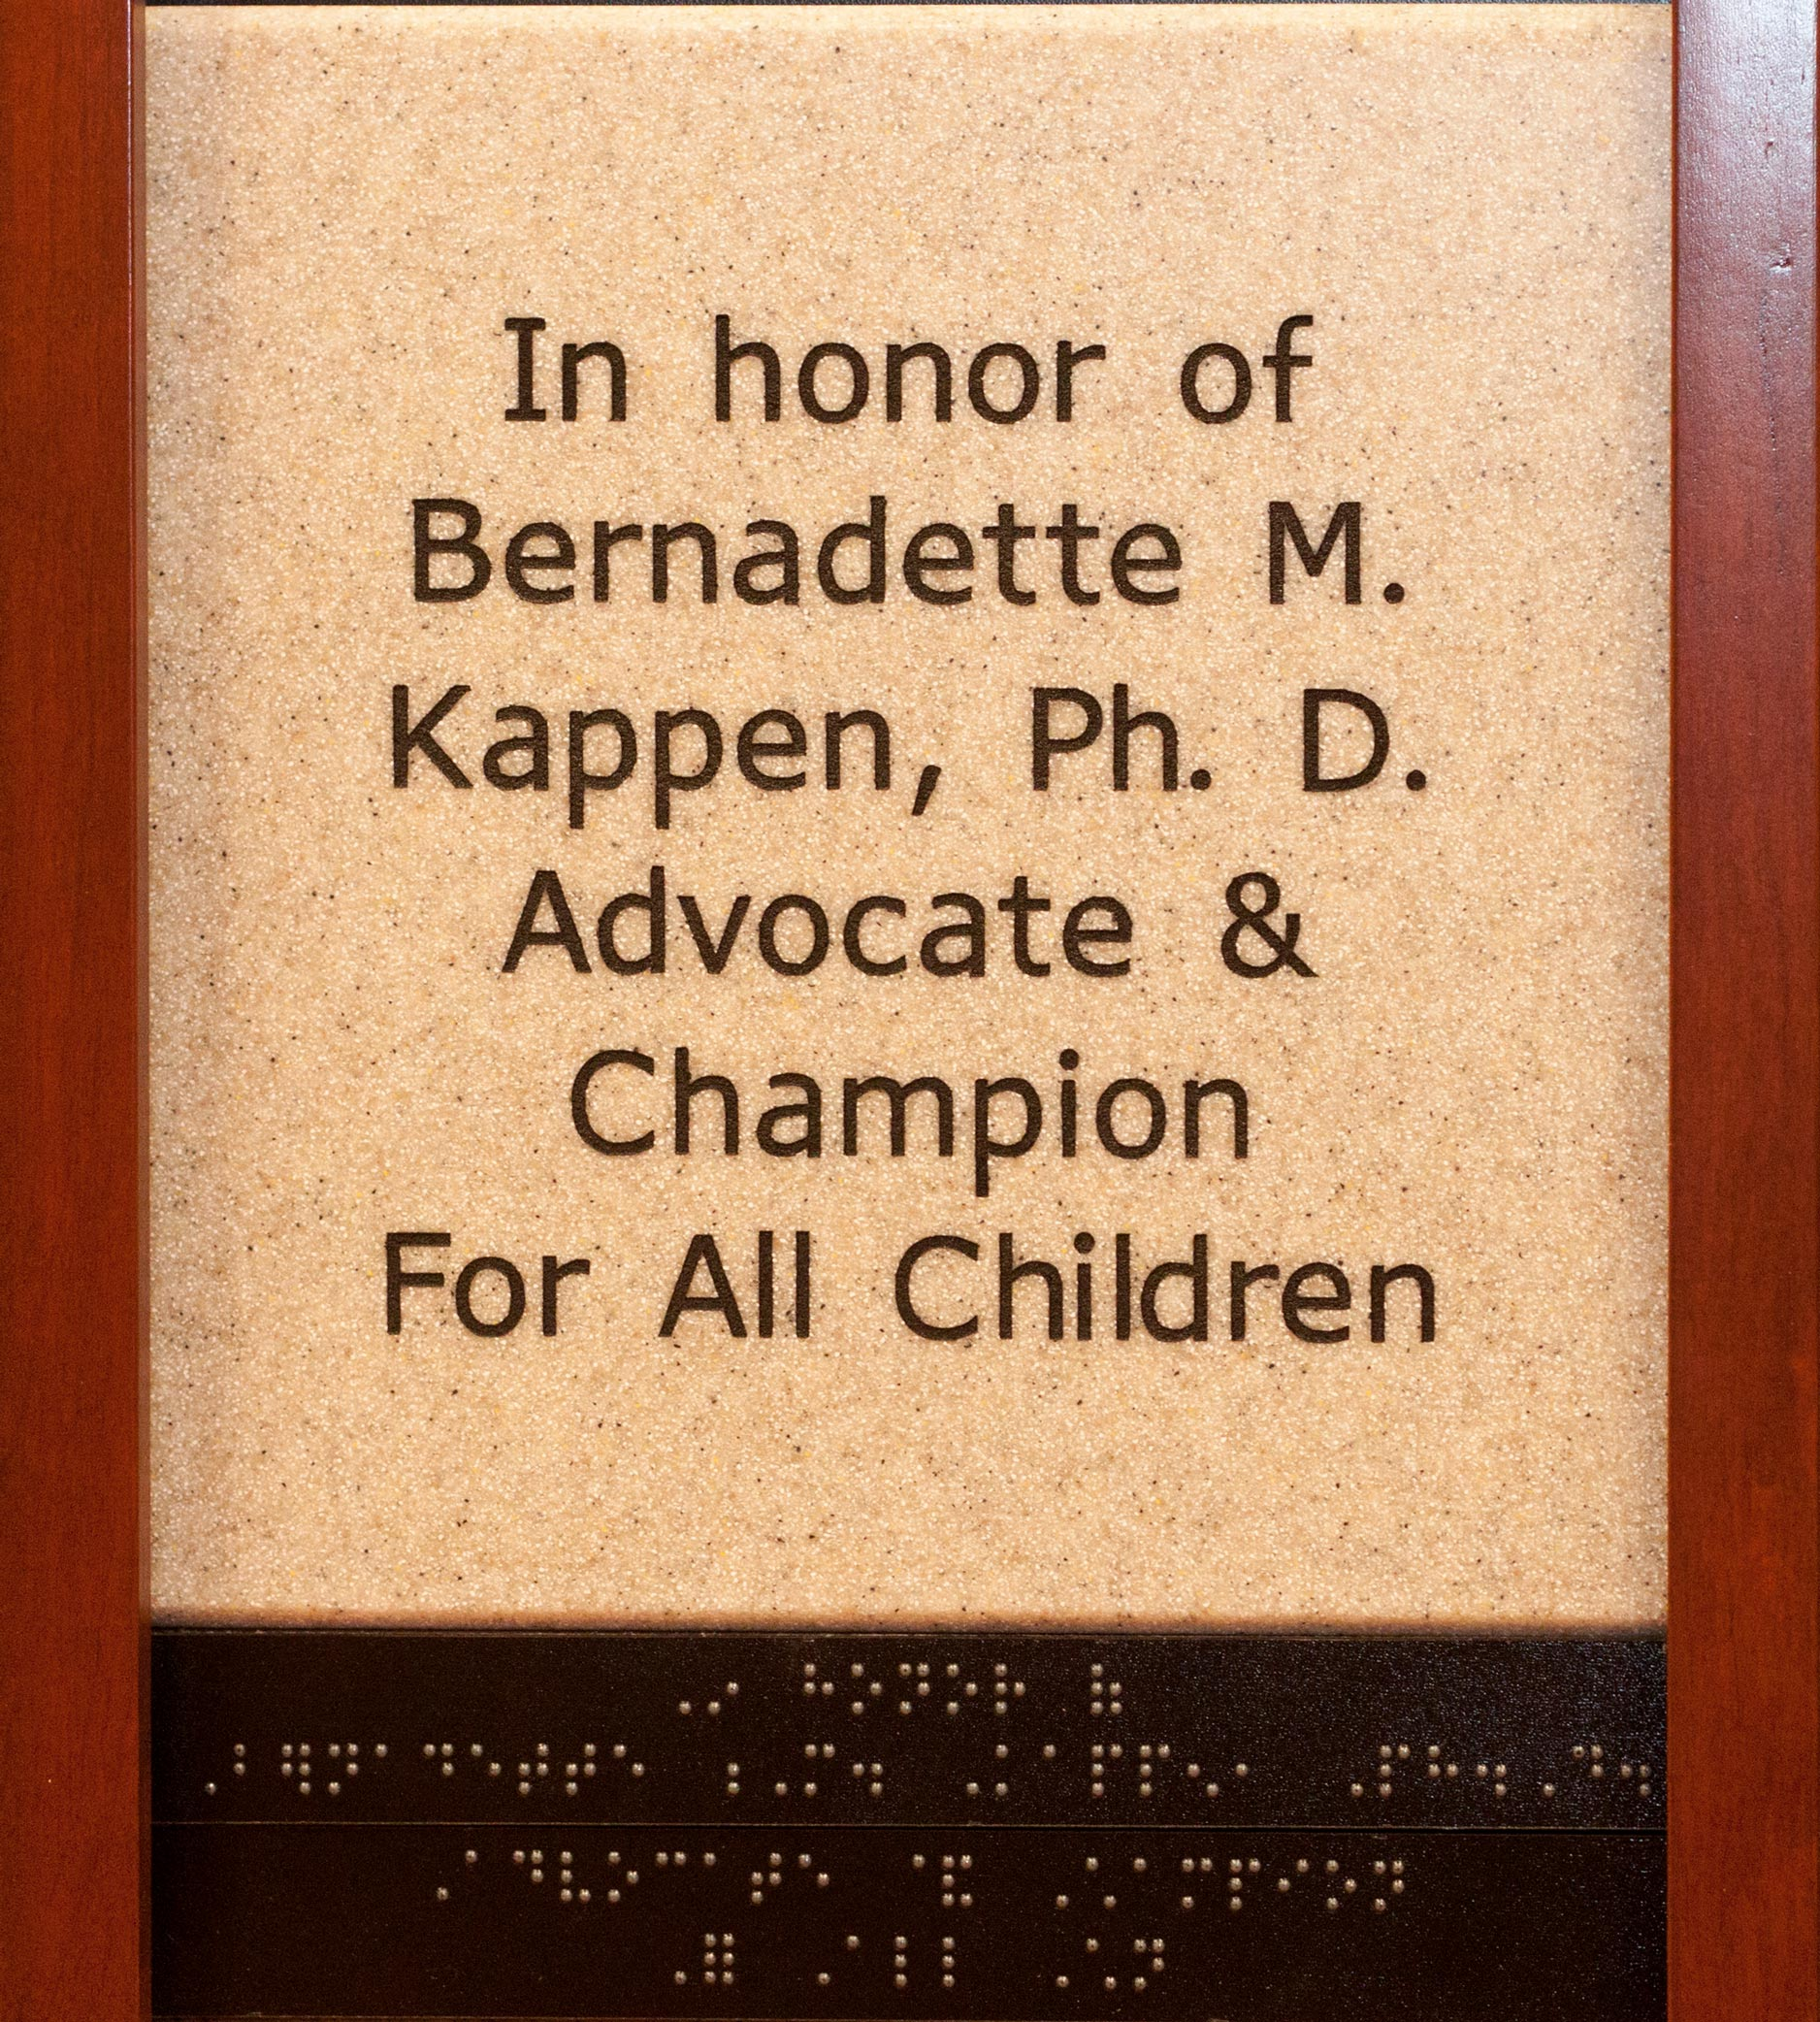 In honor of Bernadette M. Kappen, Ph. D. Advocate and Champion For All Children